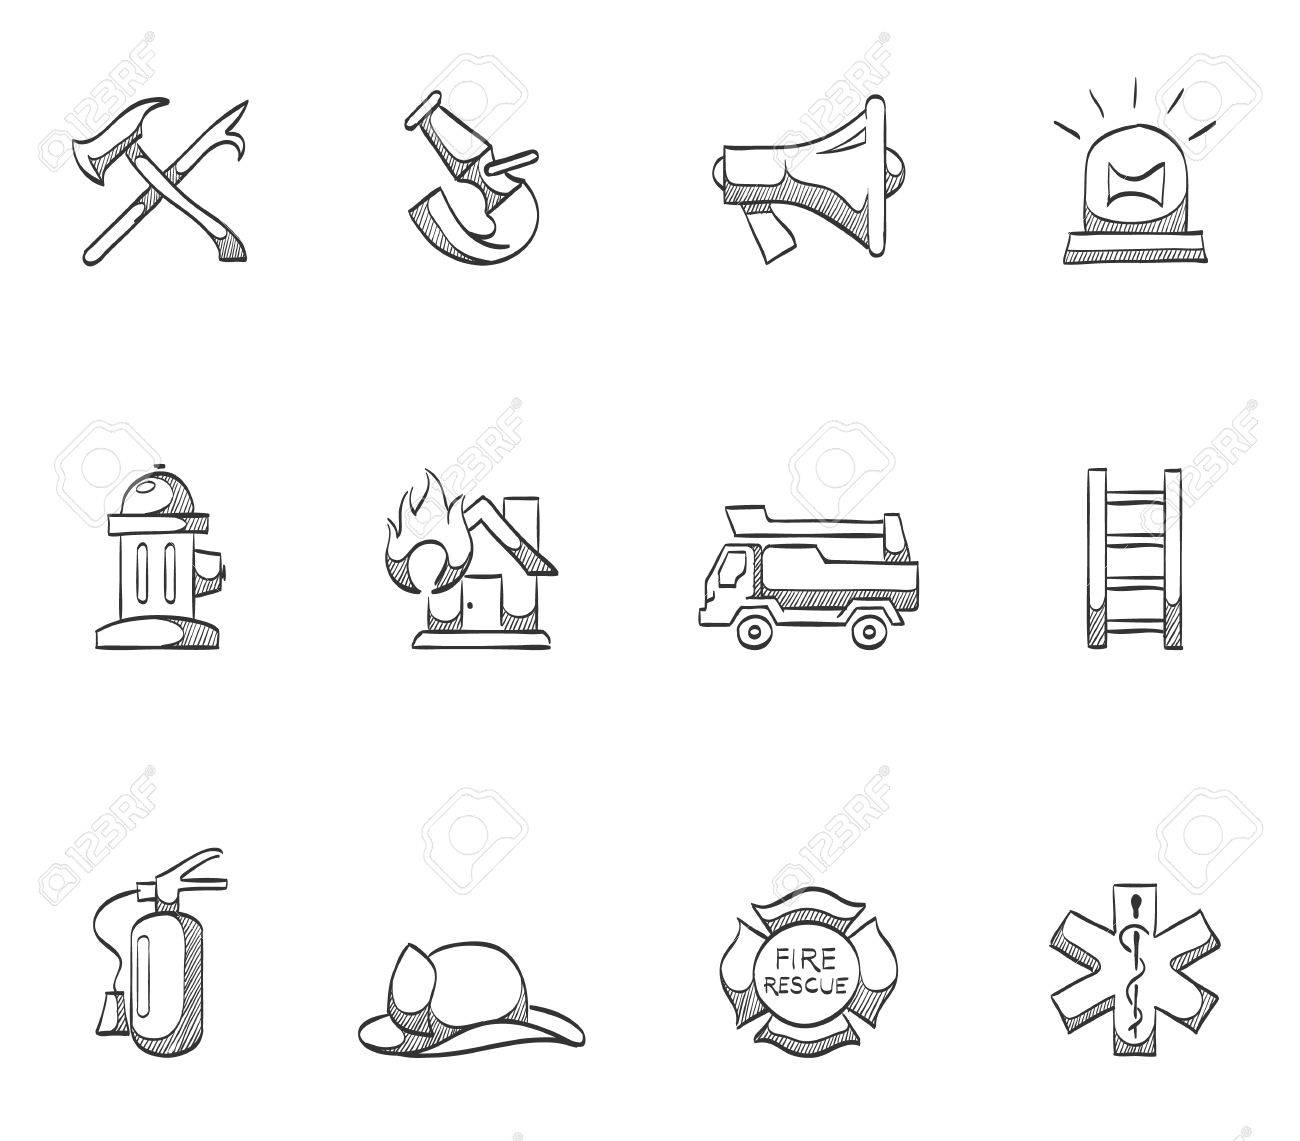 firefighter icon series hand drawn sketches royalty free cliparts